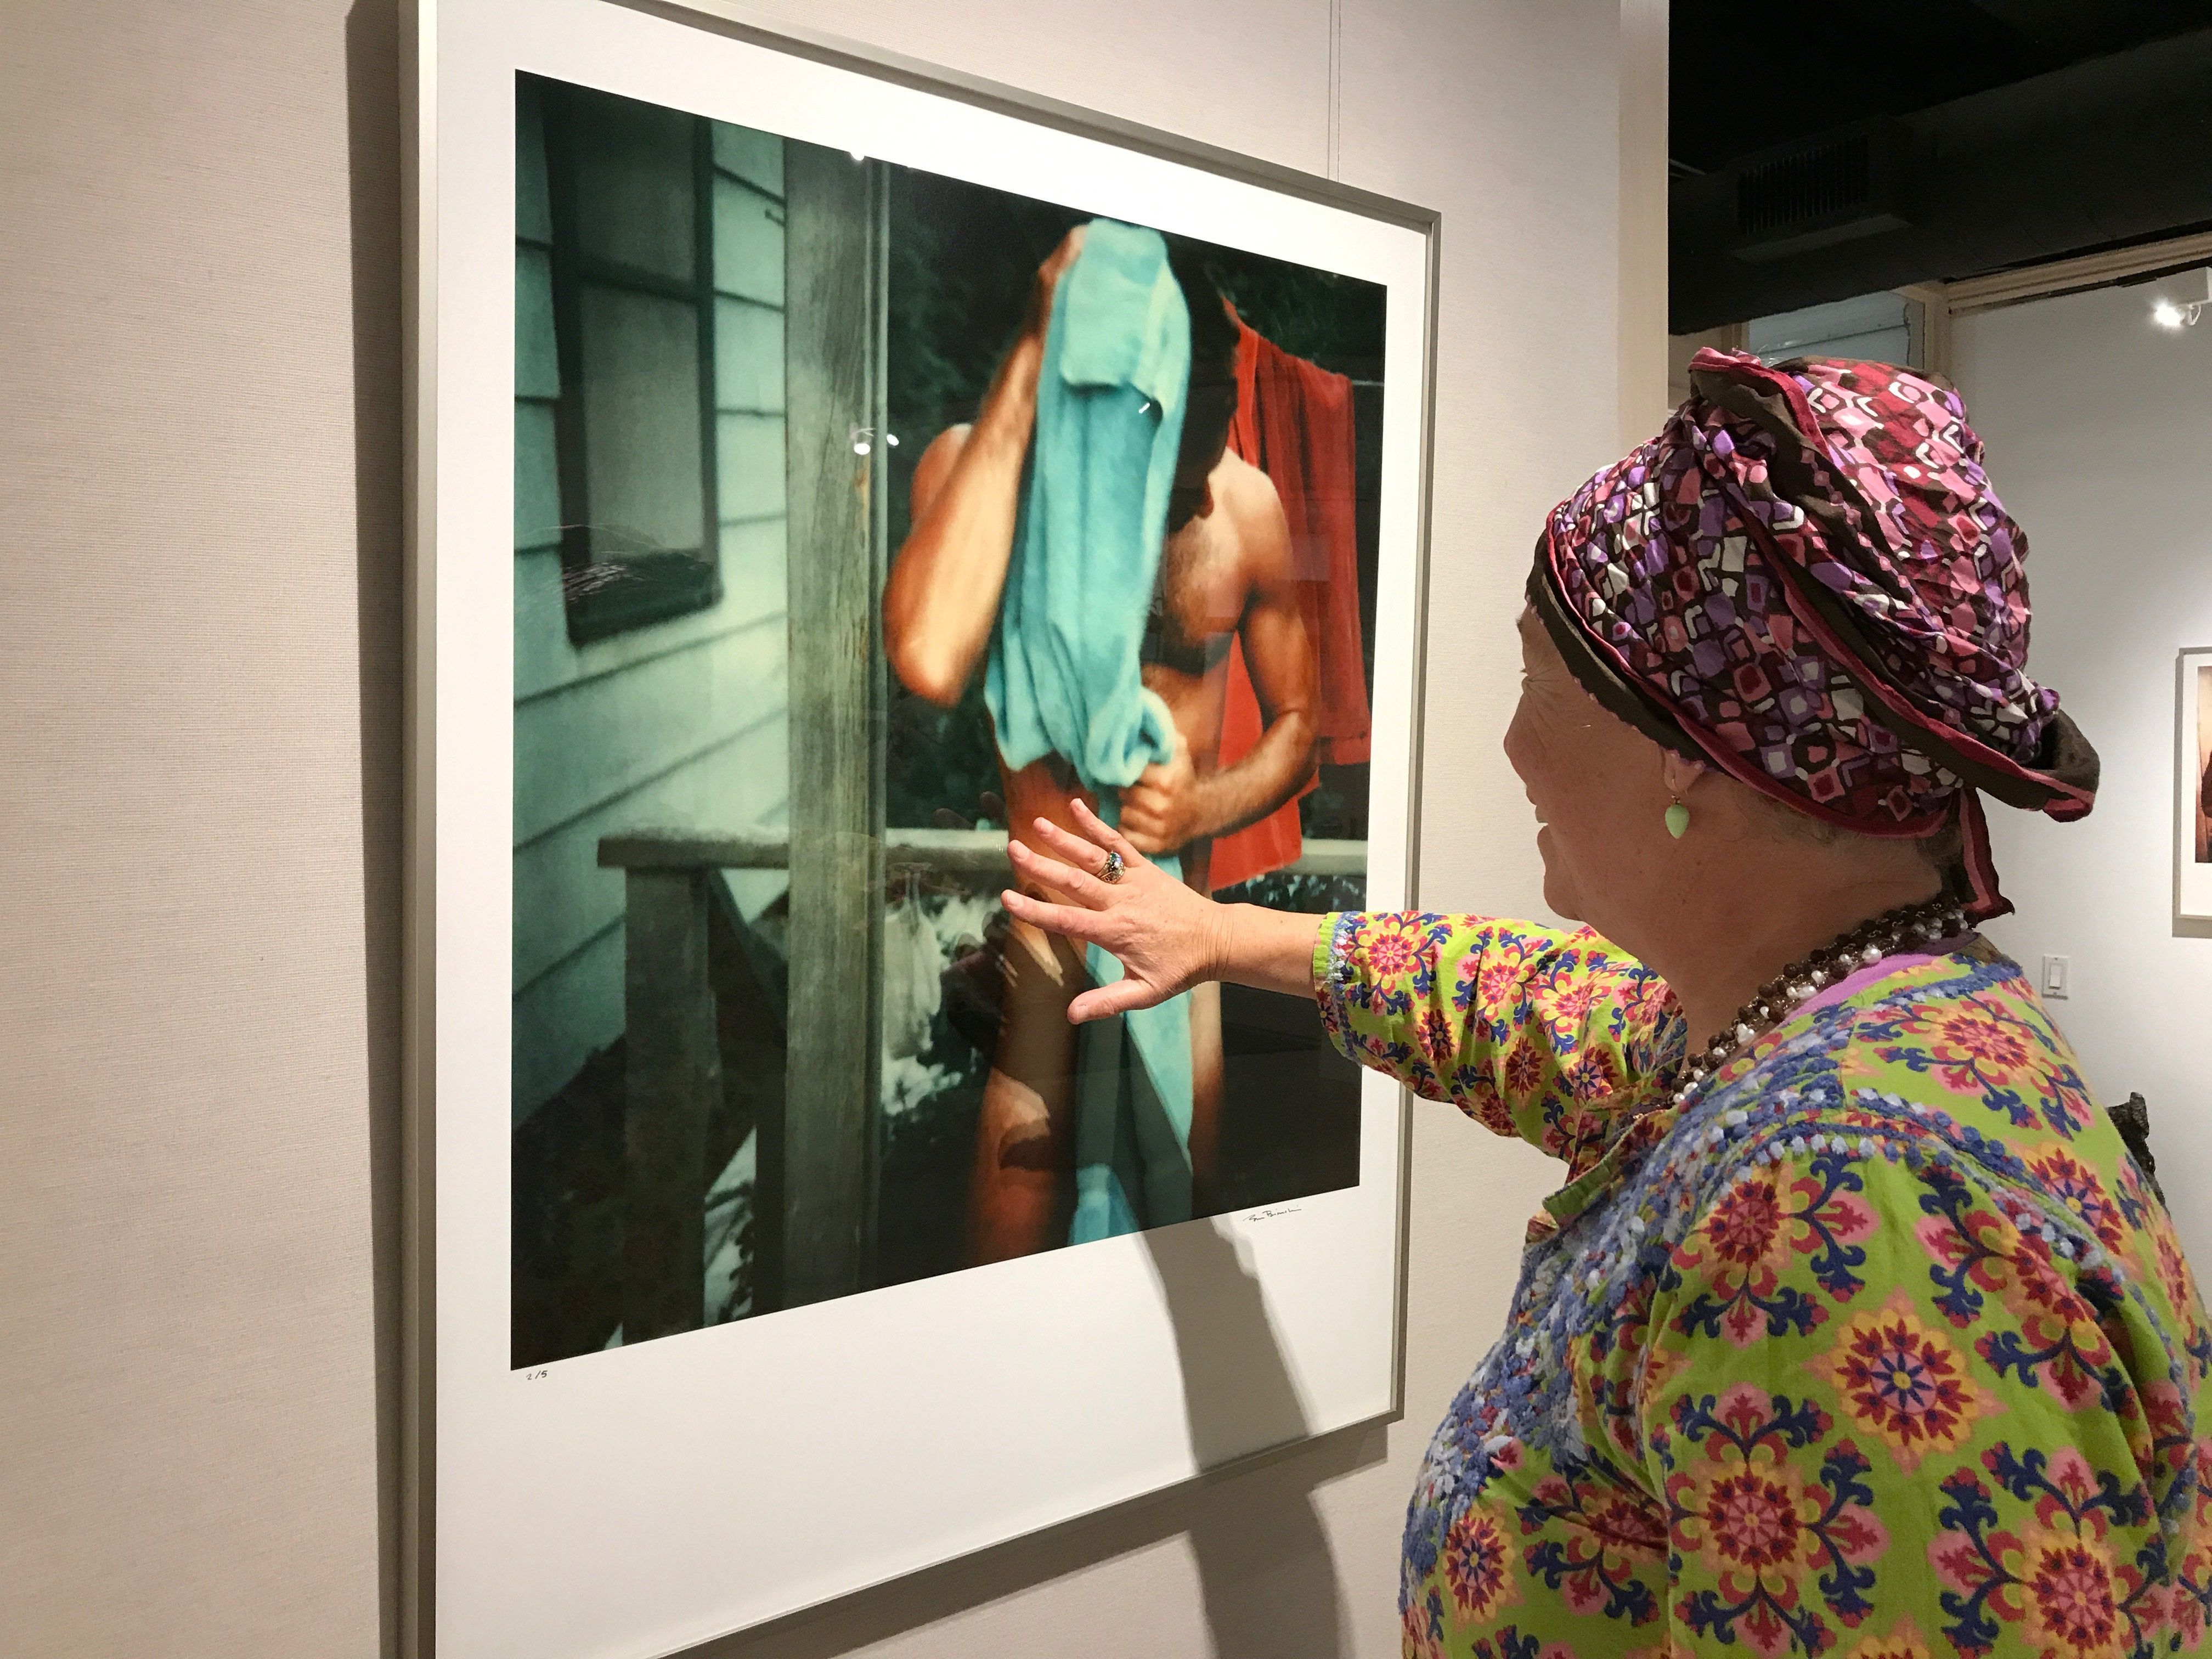 Penny Hornwood Covers Tom Bianchi Vintage Polaroid of Man In Towel With Her Hand